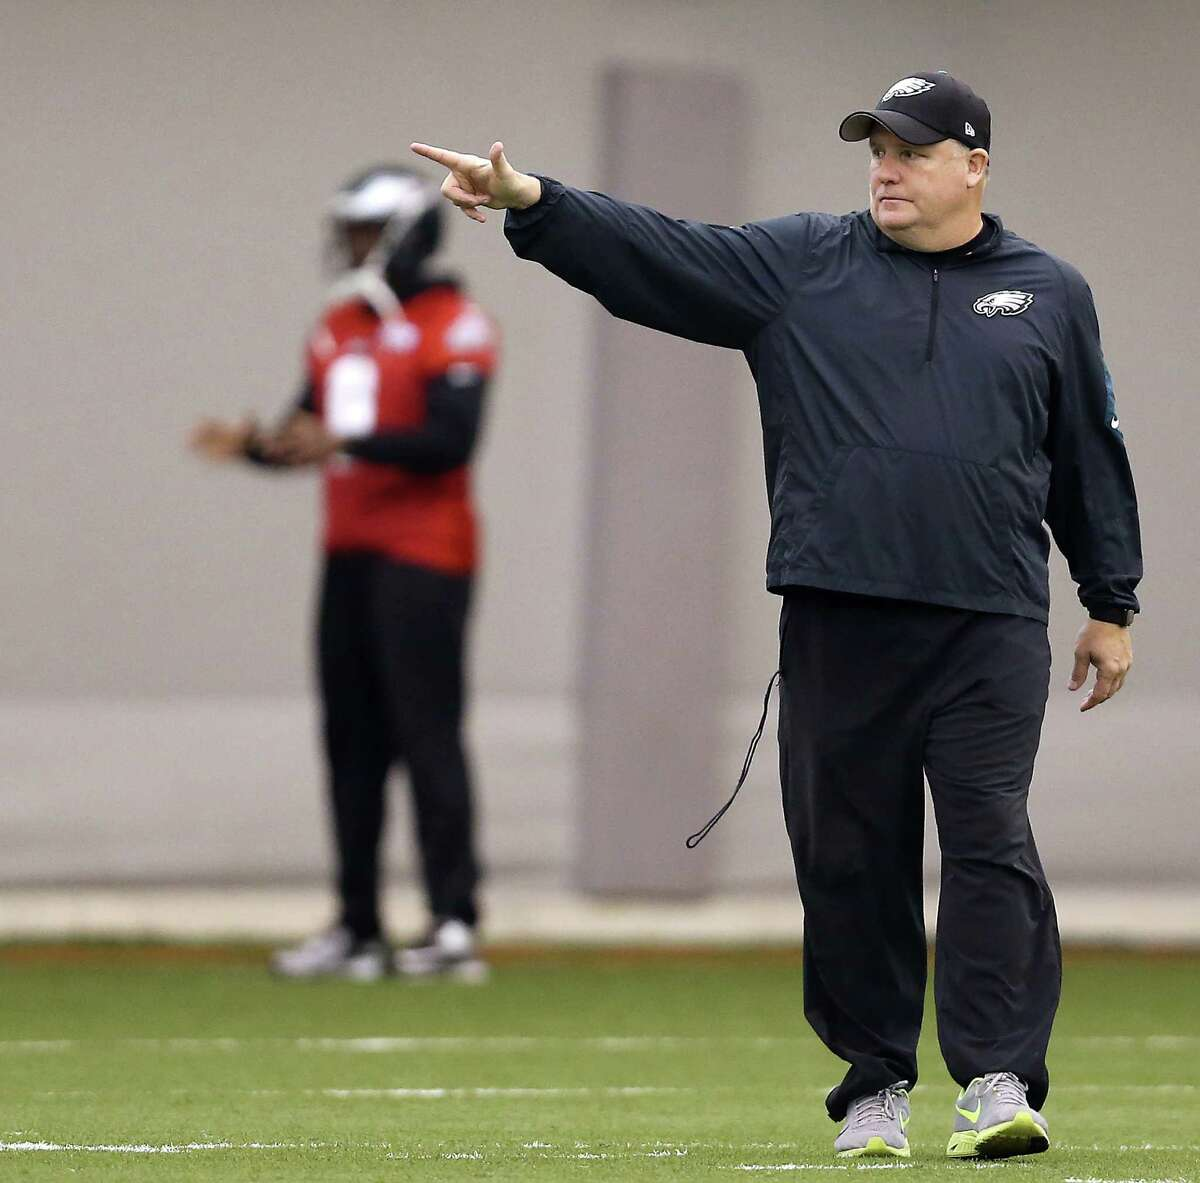 Chip Kelly, former head coach of the Philadelphia Eagles, will be interviewed on Thursday for the 49ers head coaching position.